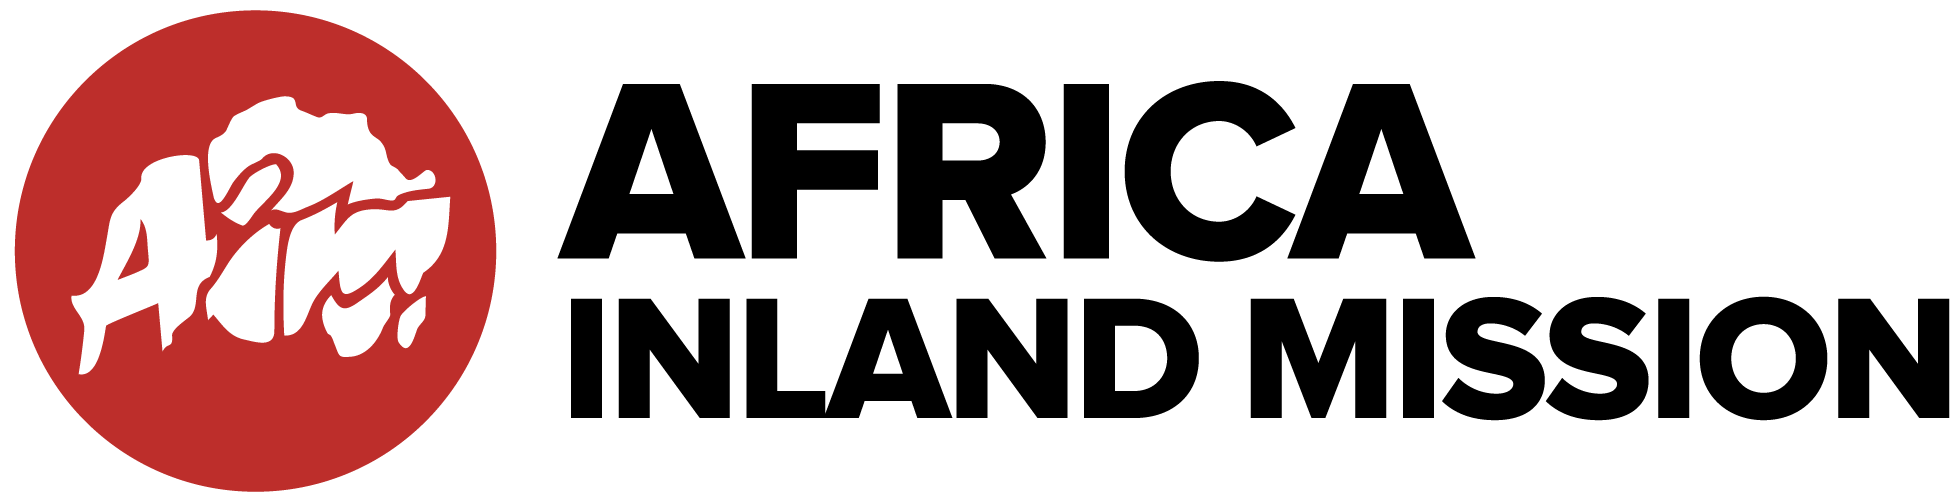 https://cornerstonemgt.net/wp-content/uploads/2021/01/africa-inland-mission-logo.png